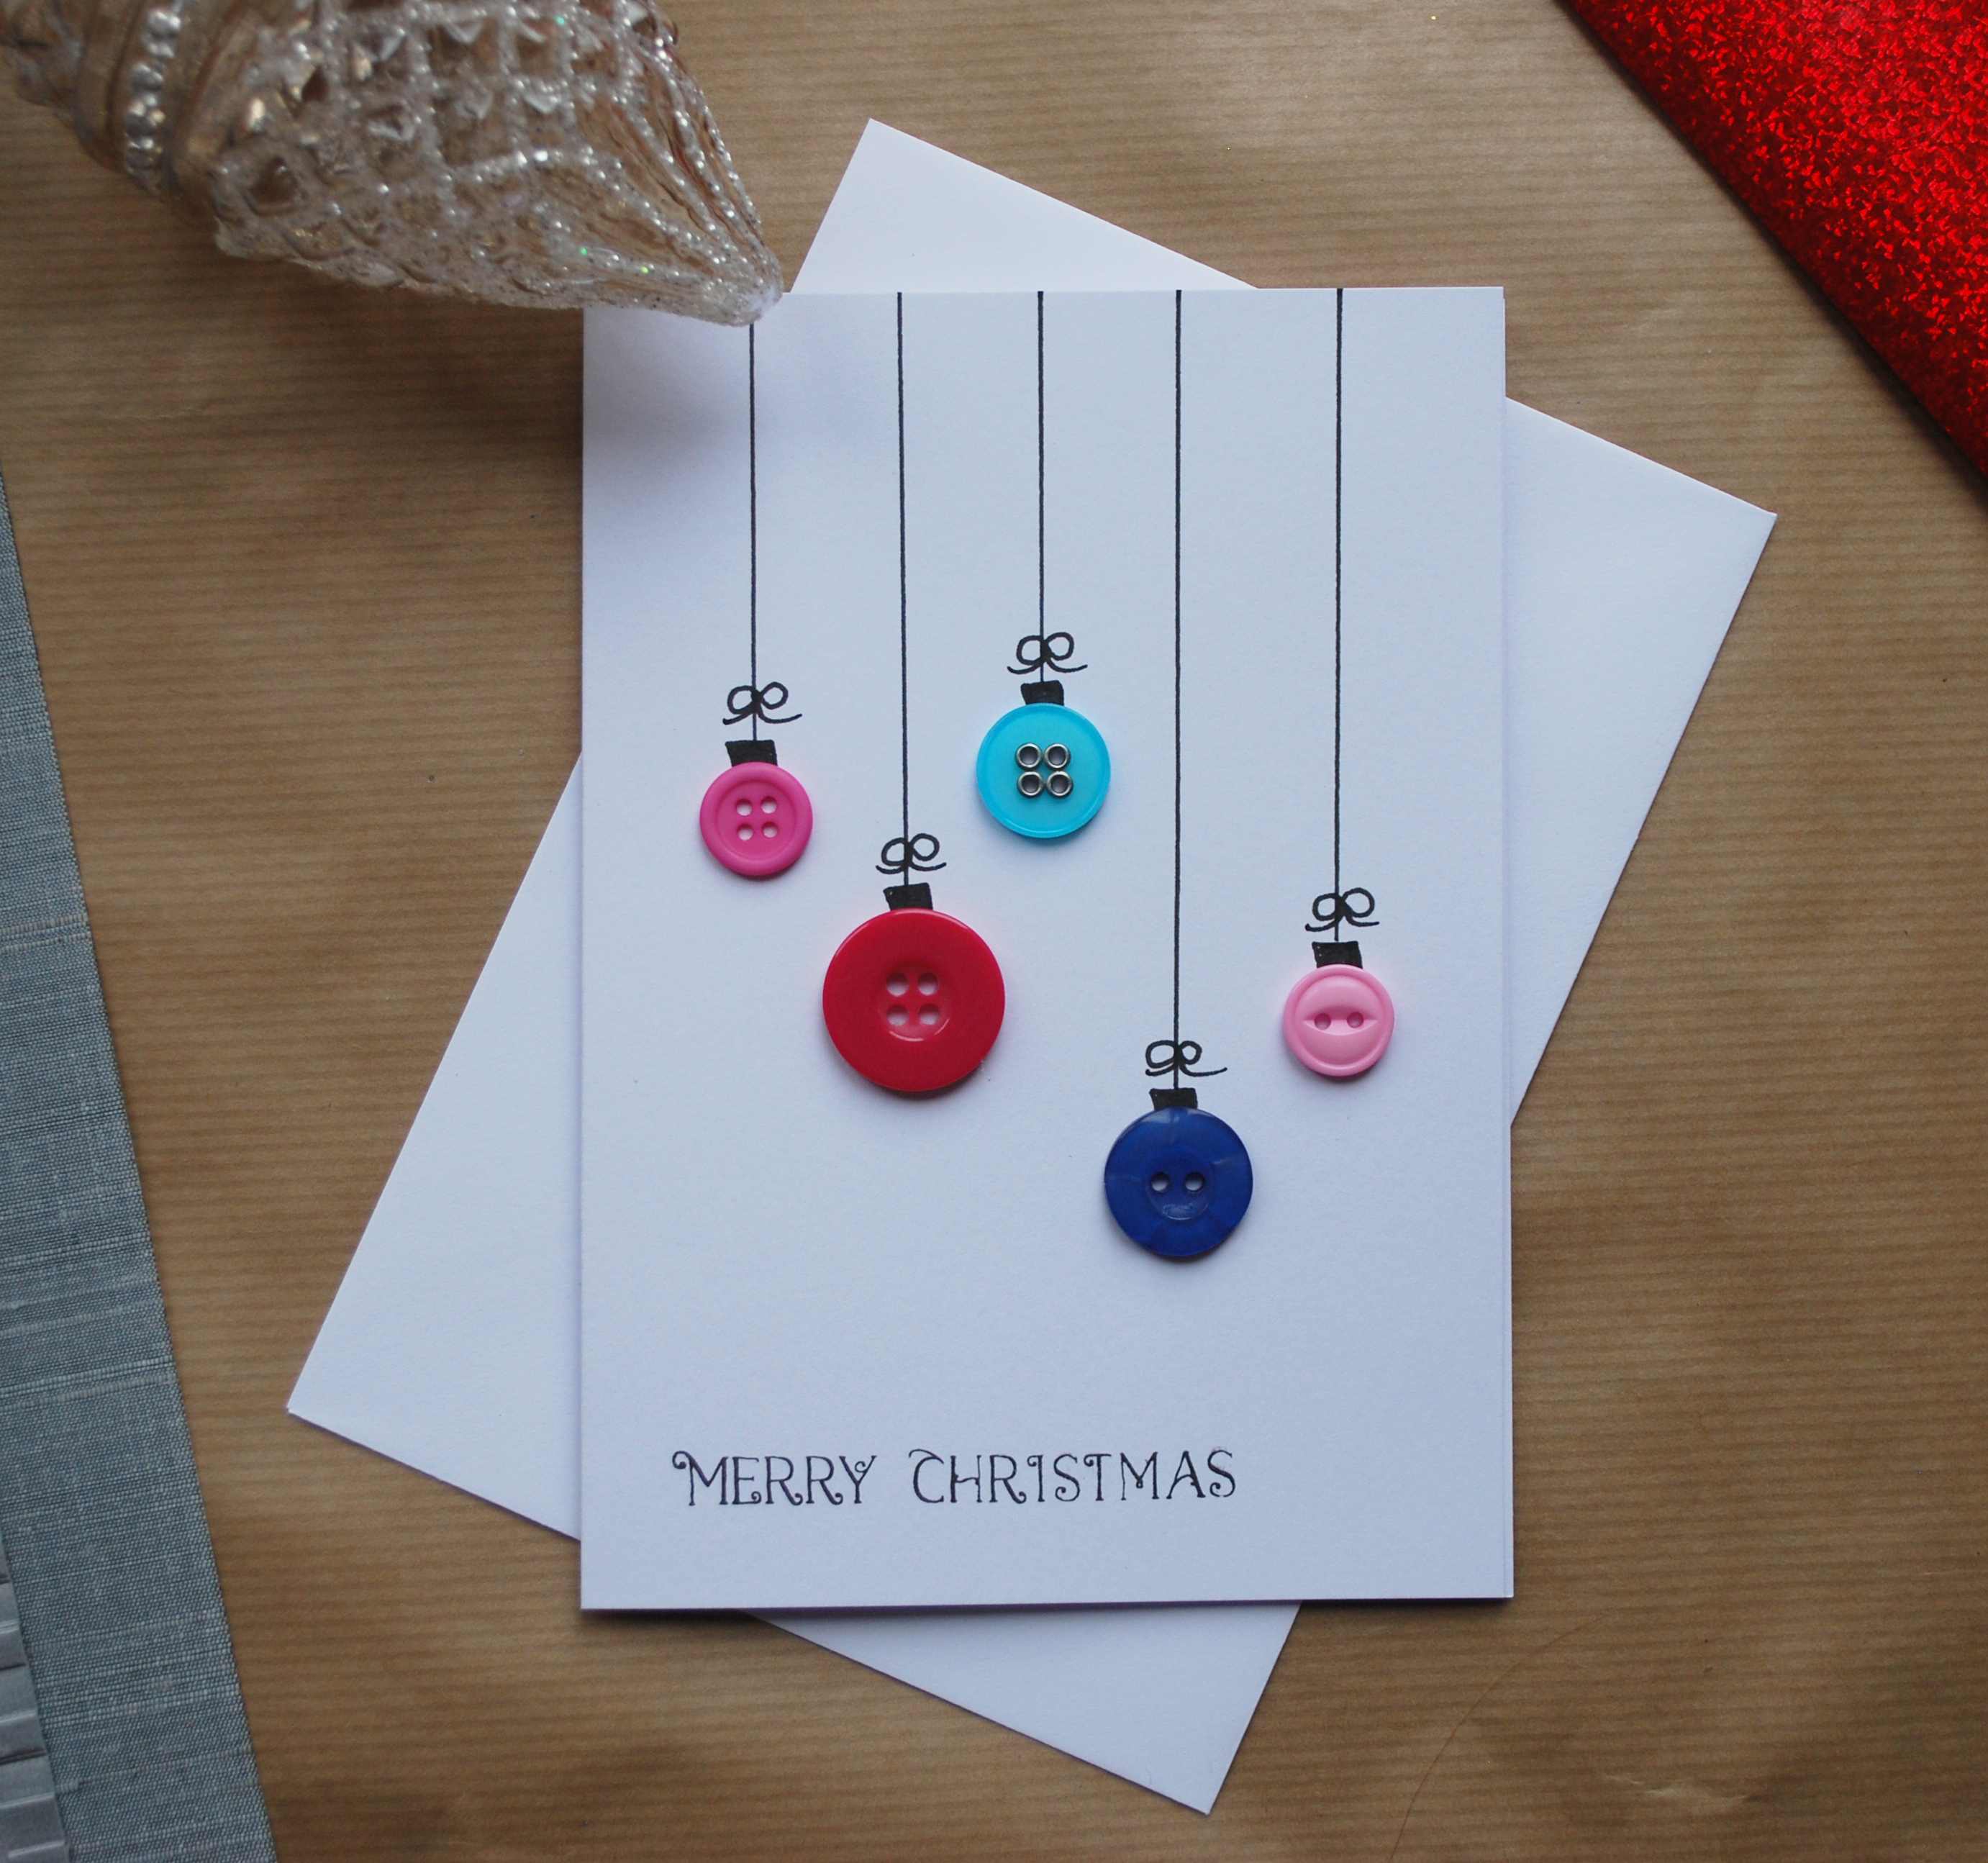 merry christmas button bauble greeting card